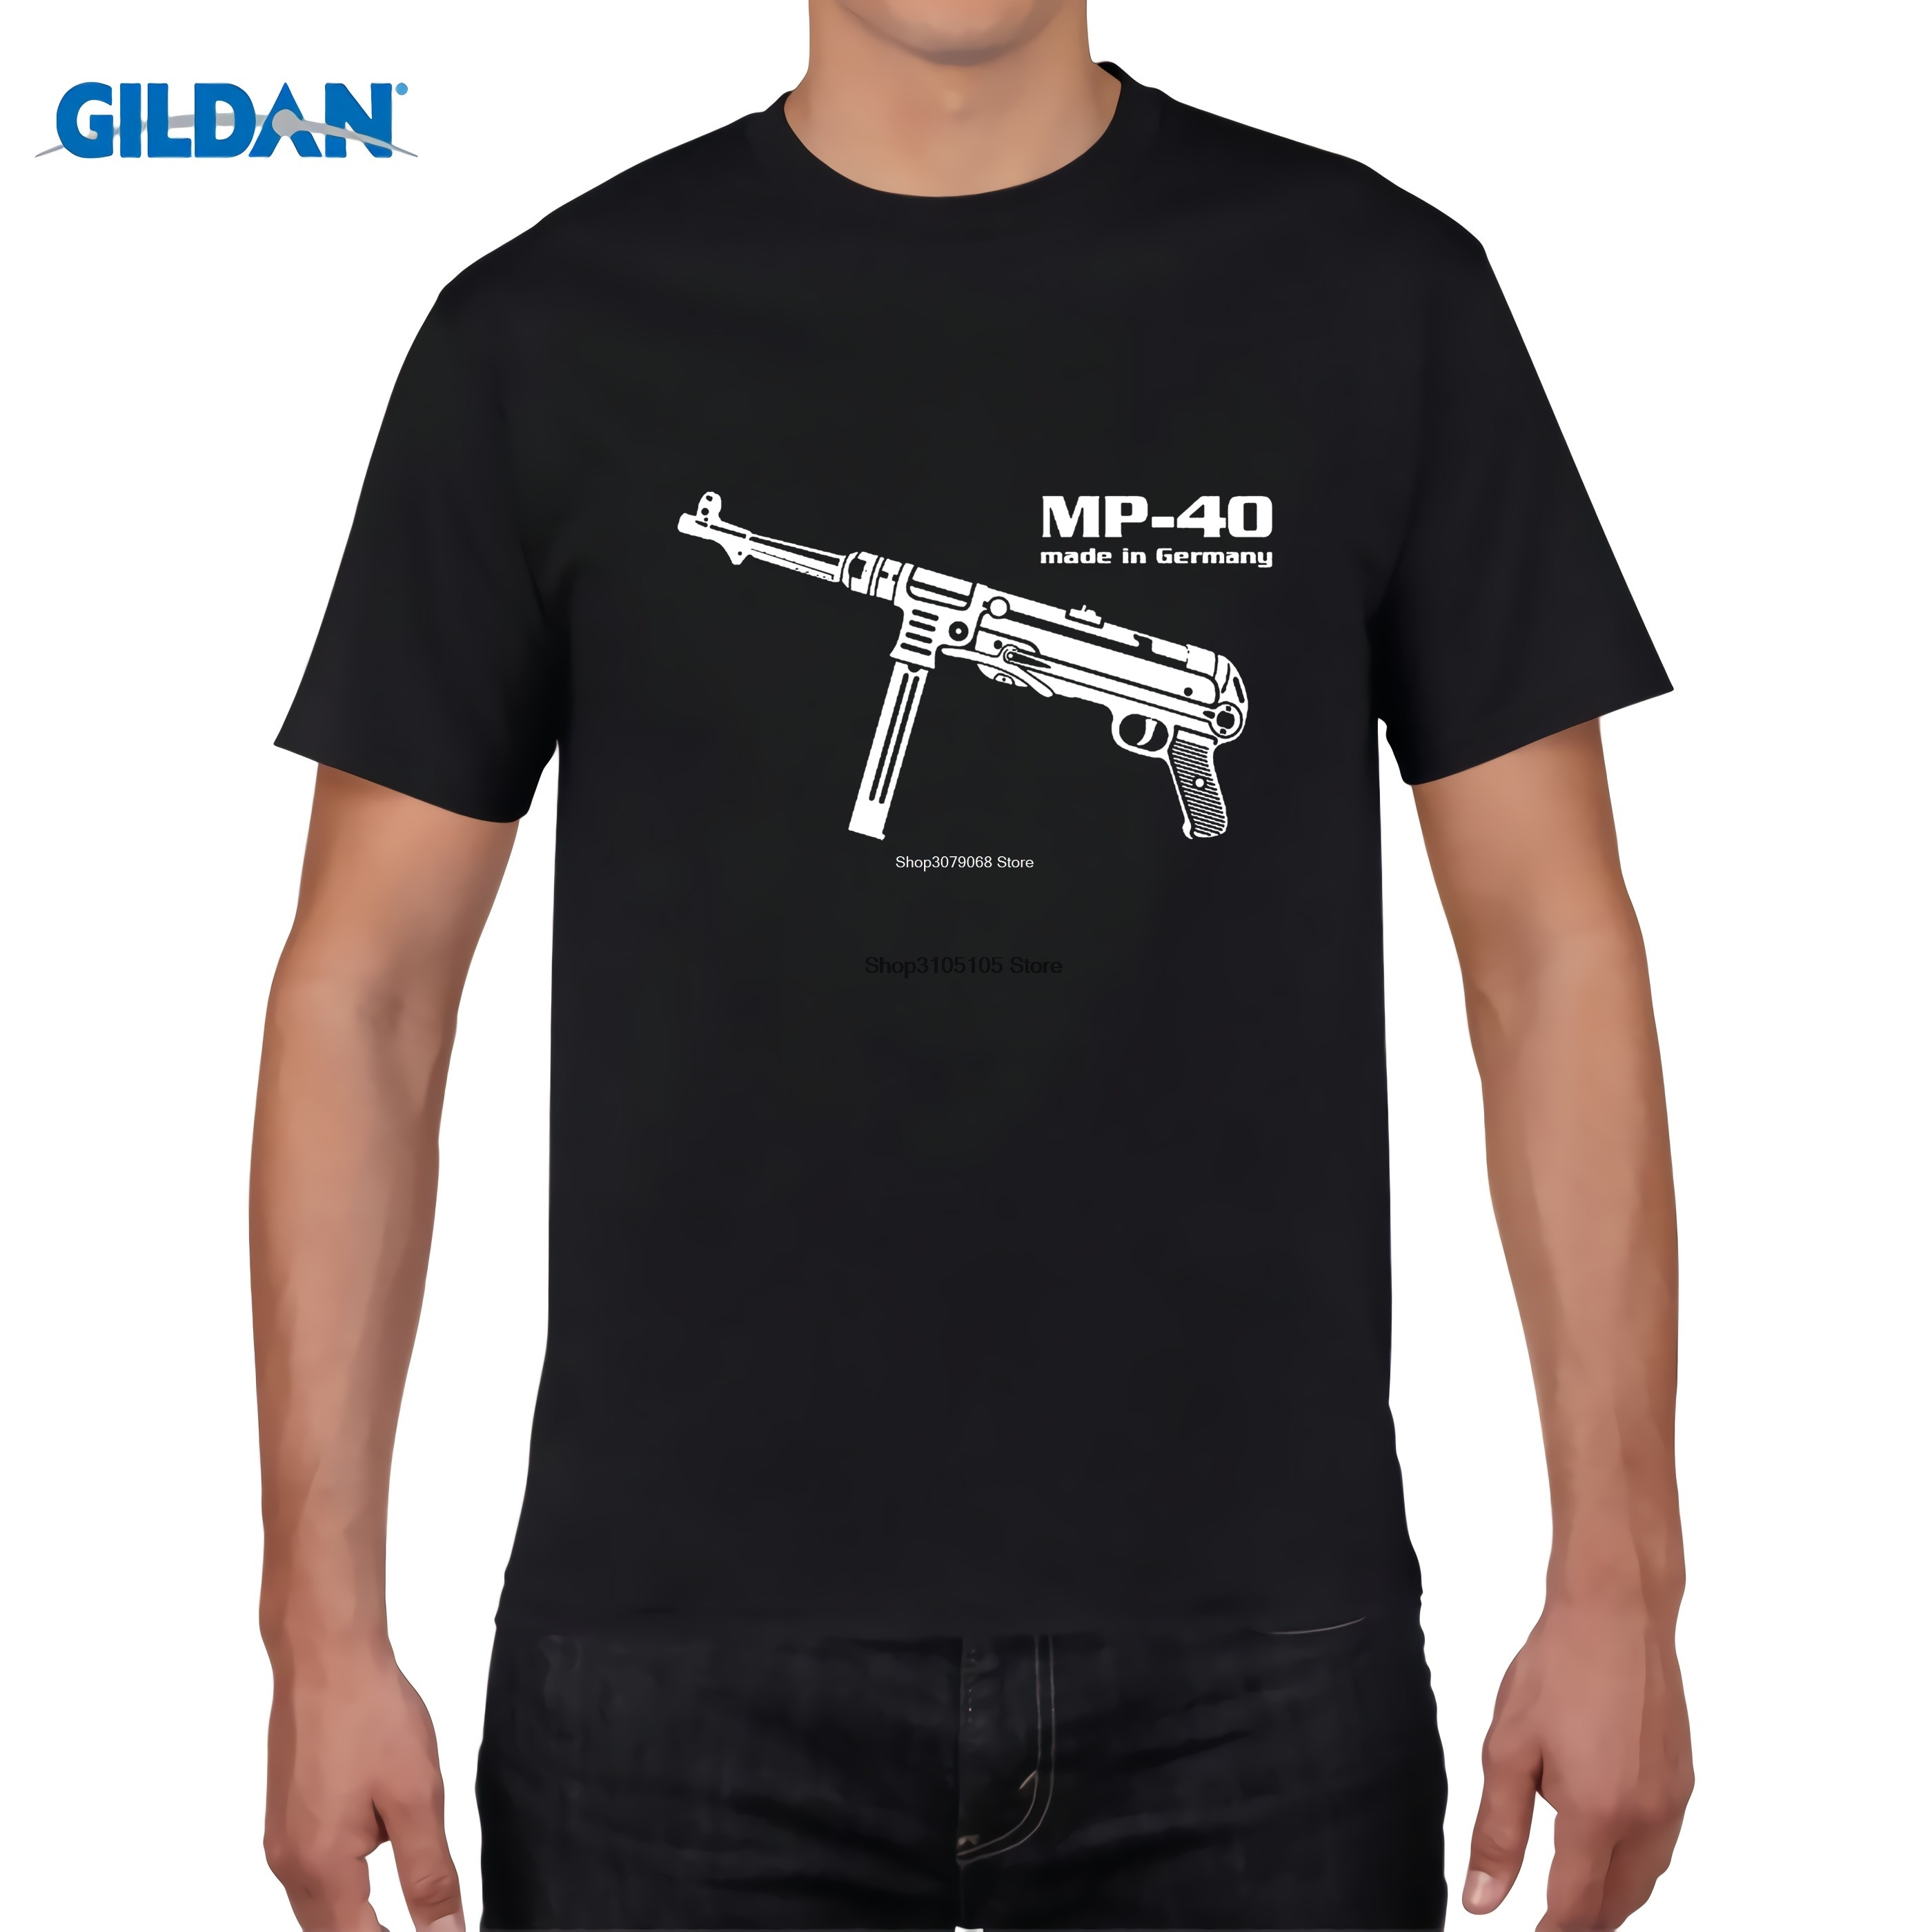 GILDAN Different colors high quality casual men's street wear short sleeve Tee shirt Mp 40 Maschinen pistol Germany Wehrmacht